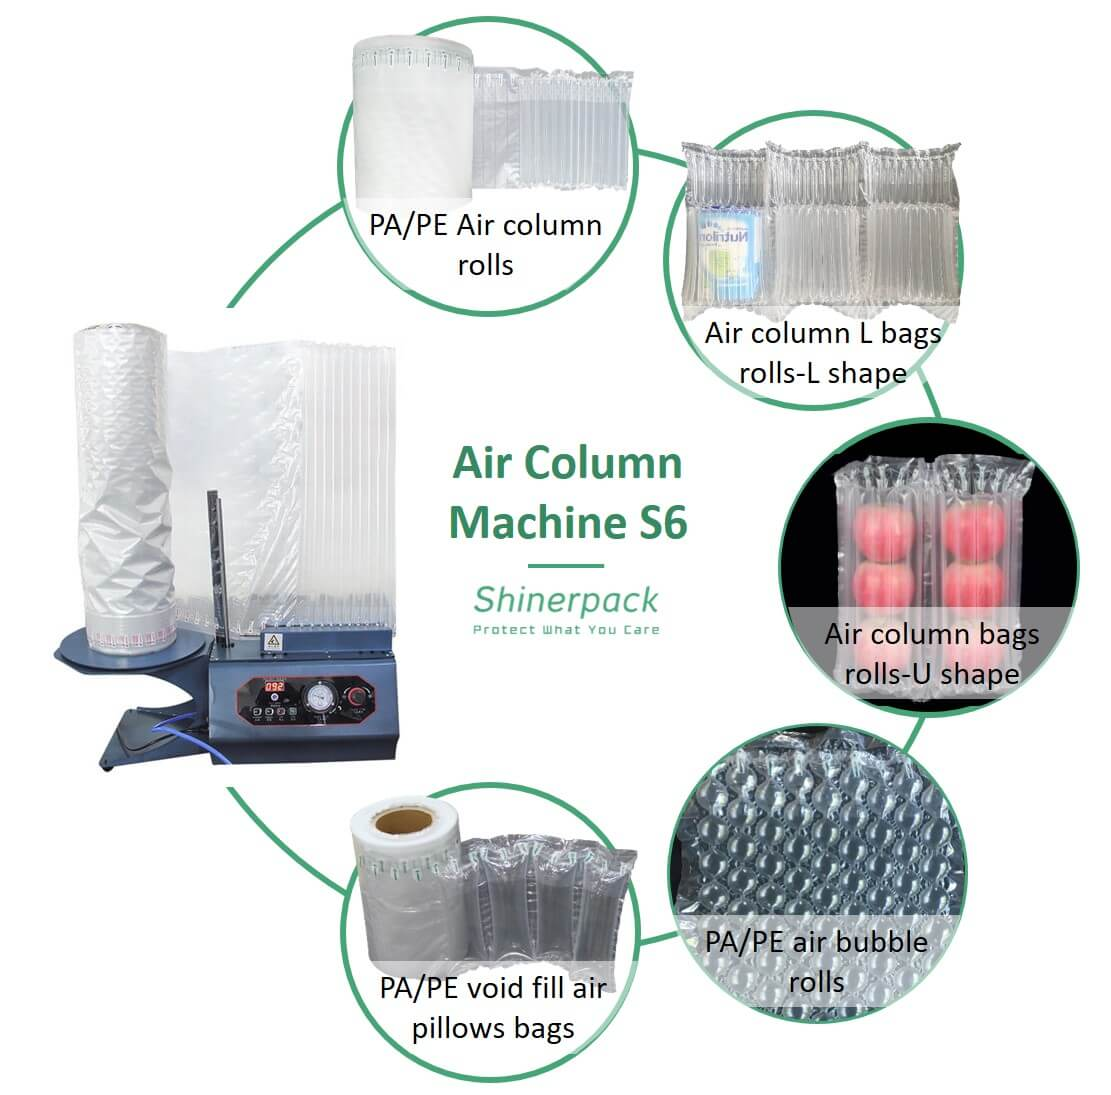 What kinds of film can be inflated with air column machine